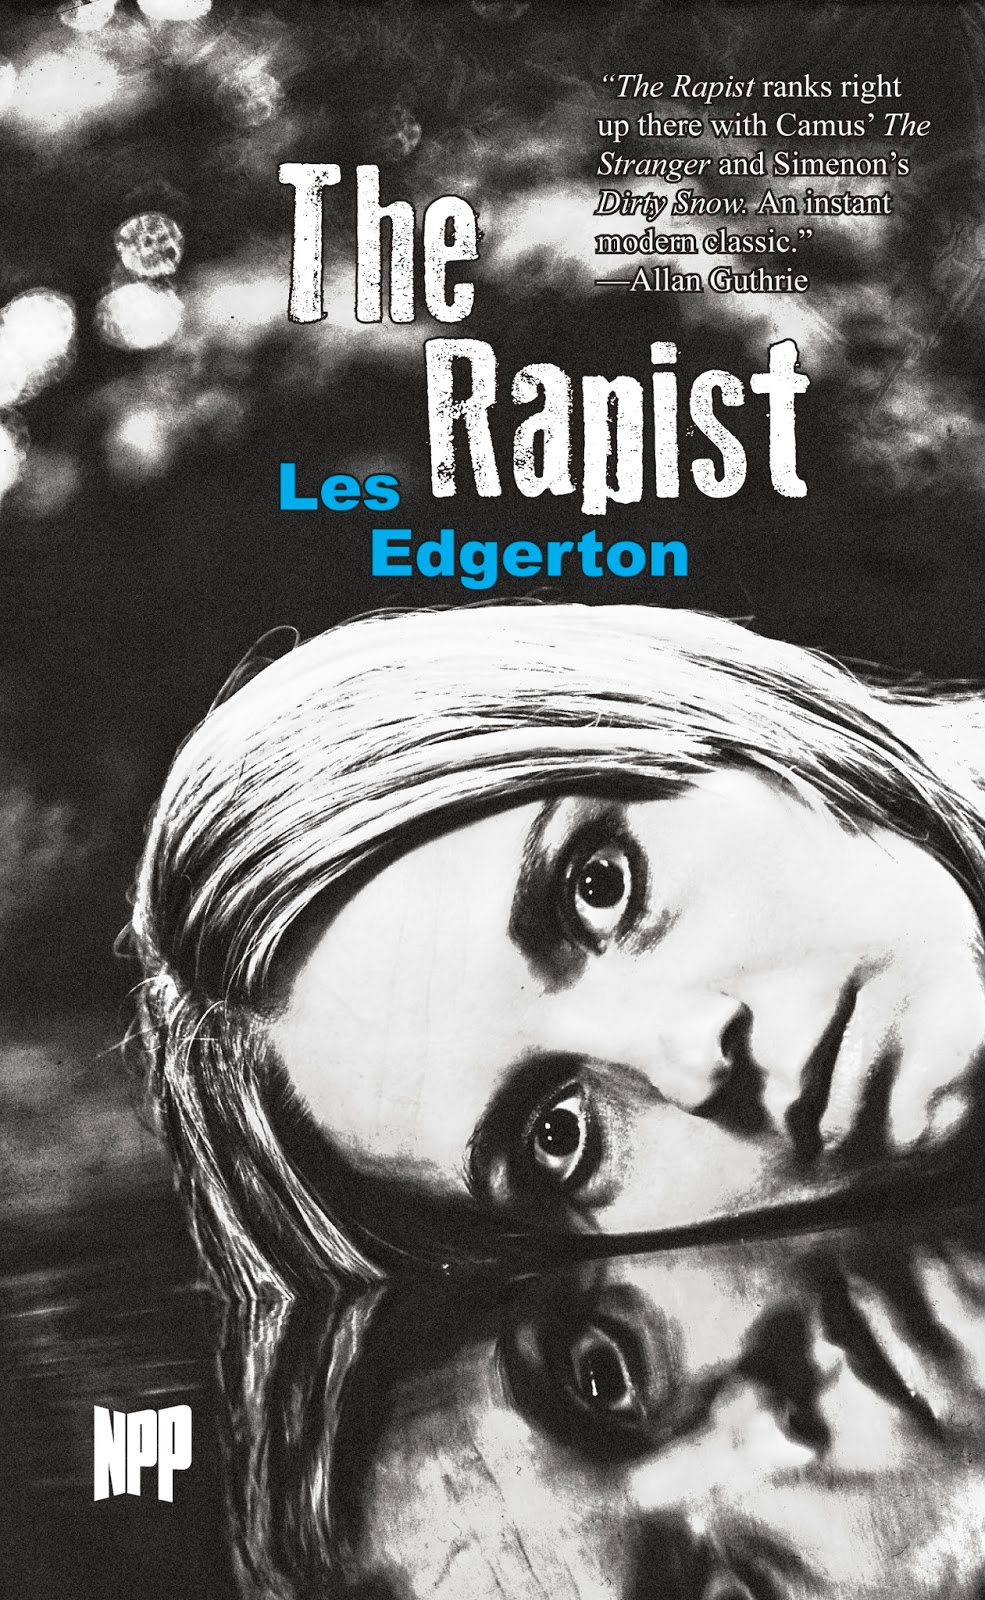 http://www.amazon.com/Rapist-Edgerton-ebook/dp/B00BOXQVF0/?tag=bisboanpa-20